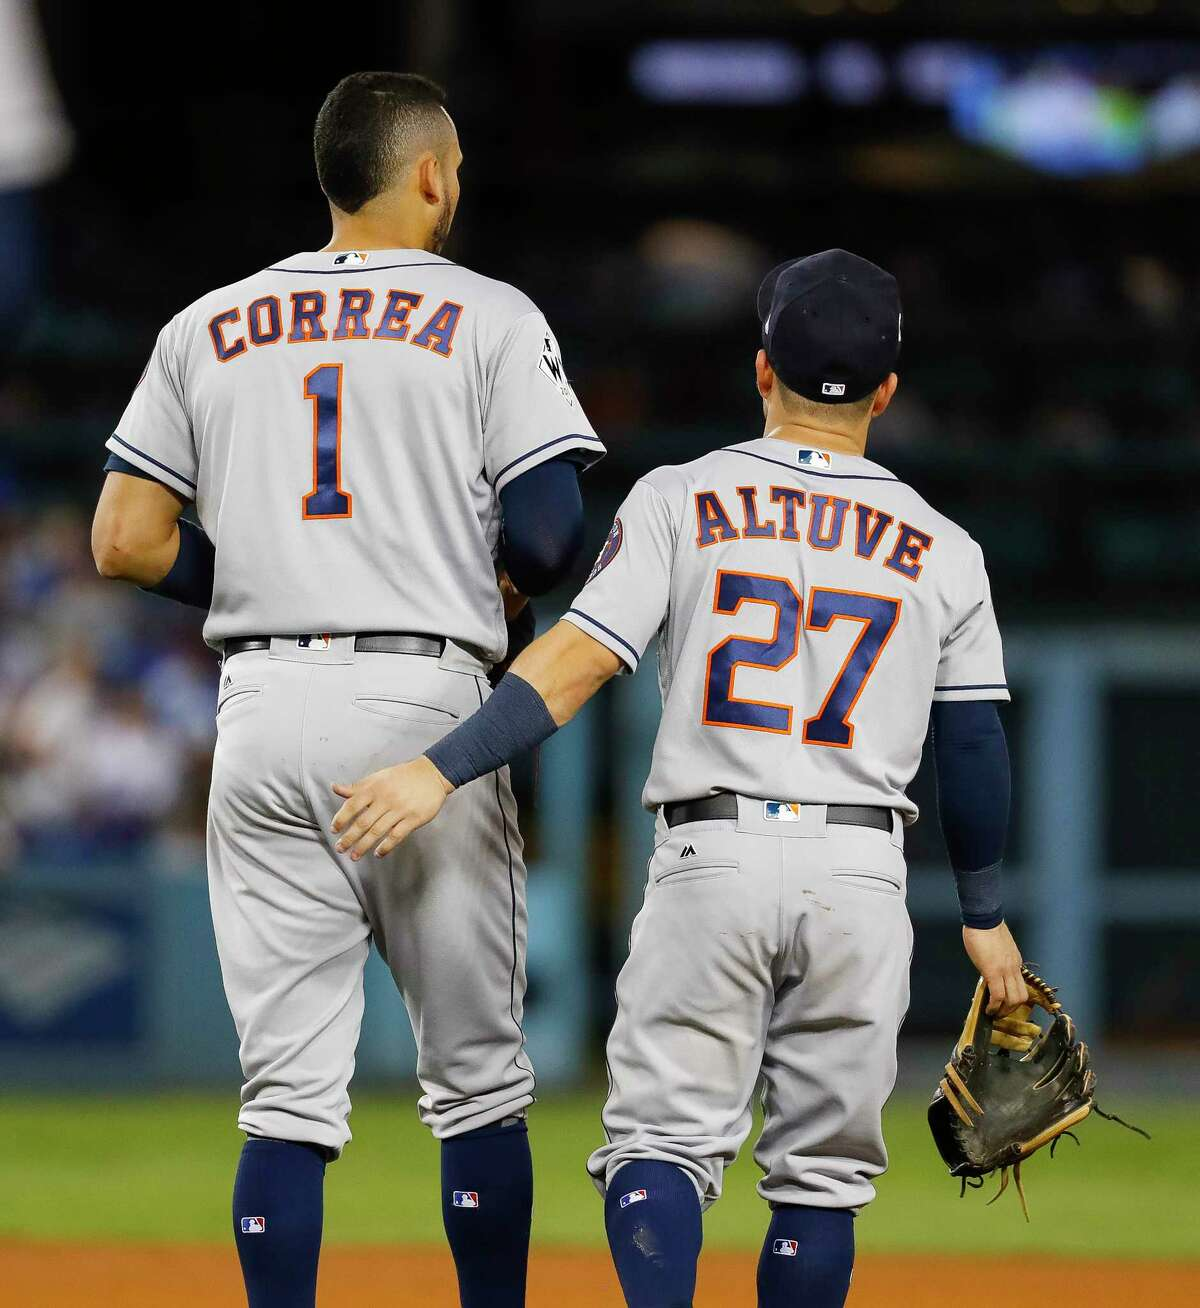 The Astros' middle infielders are as thick as thieves and are one of baseball's most dynamic second base and short stop combos.